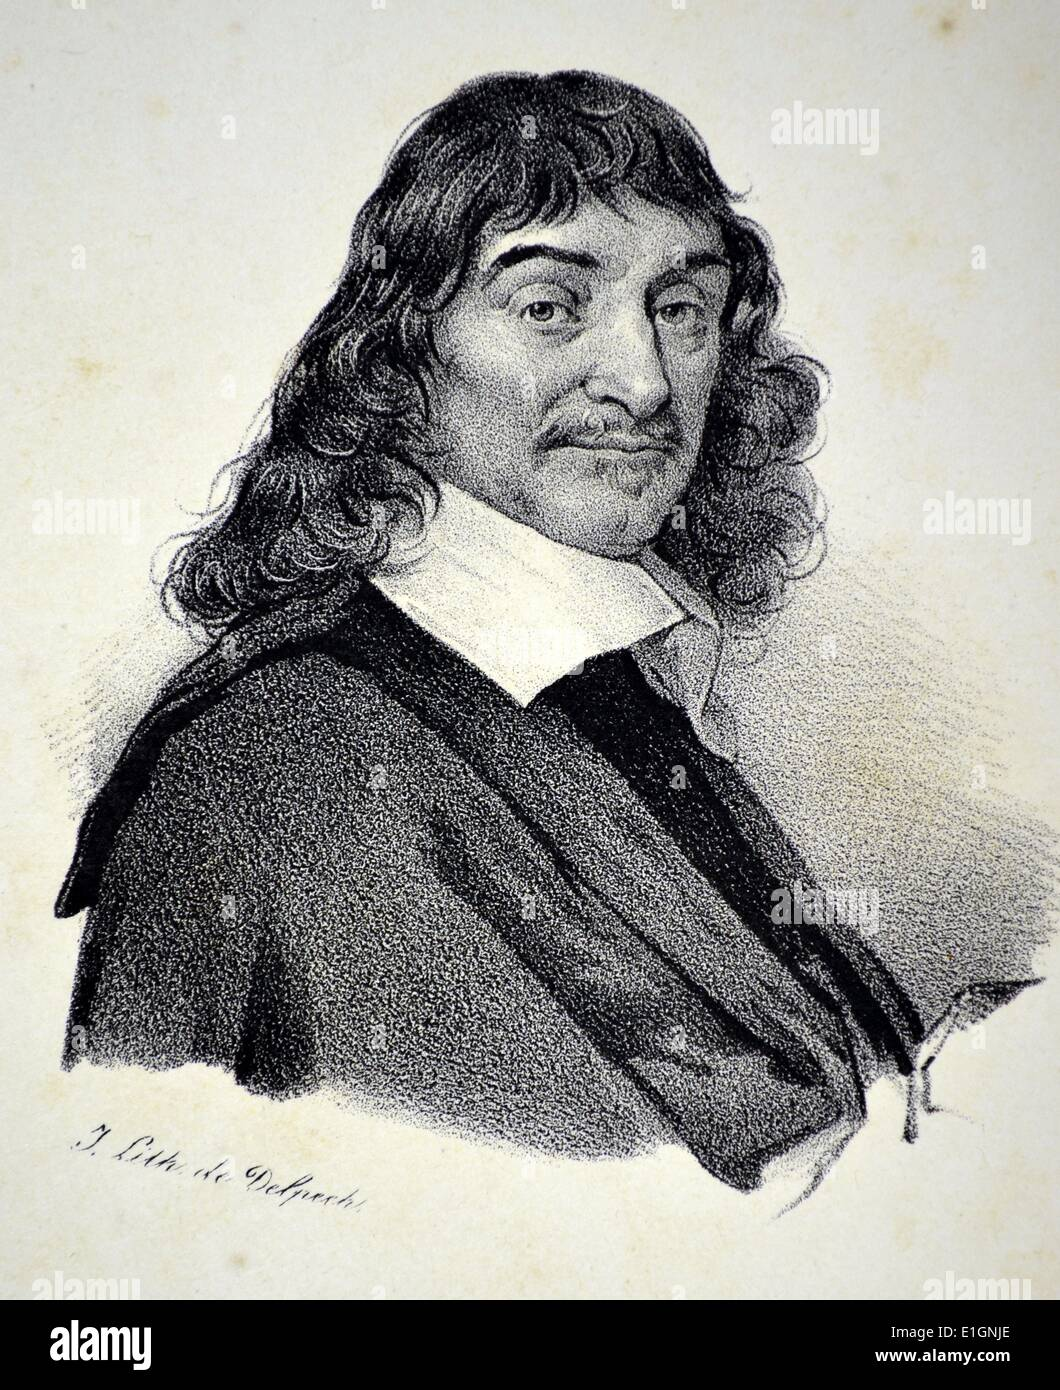 Rene Descartes (1596-1650) French m,athematician and philosopher.  Lithograph, Paris, c1840.